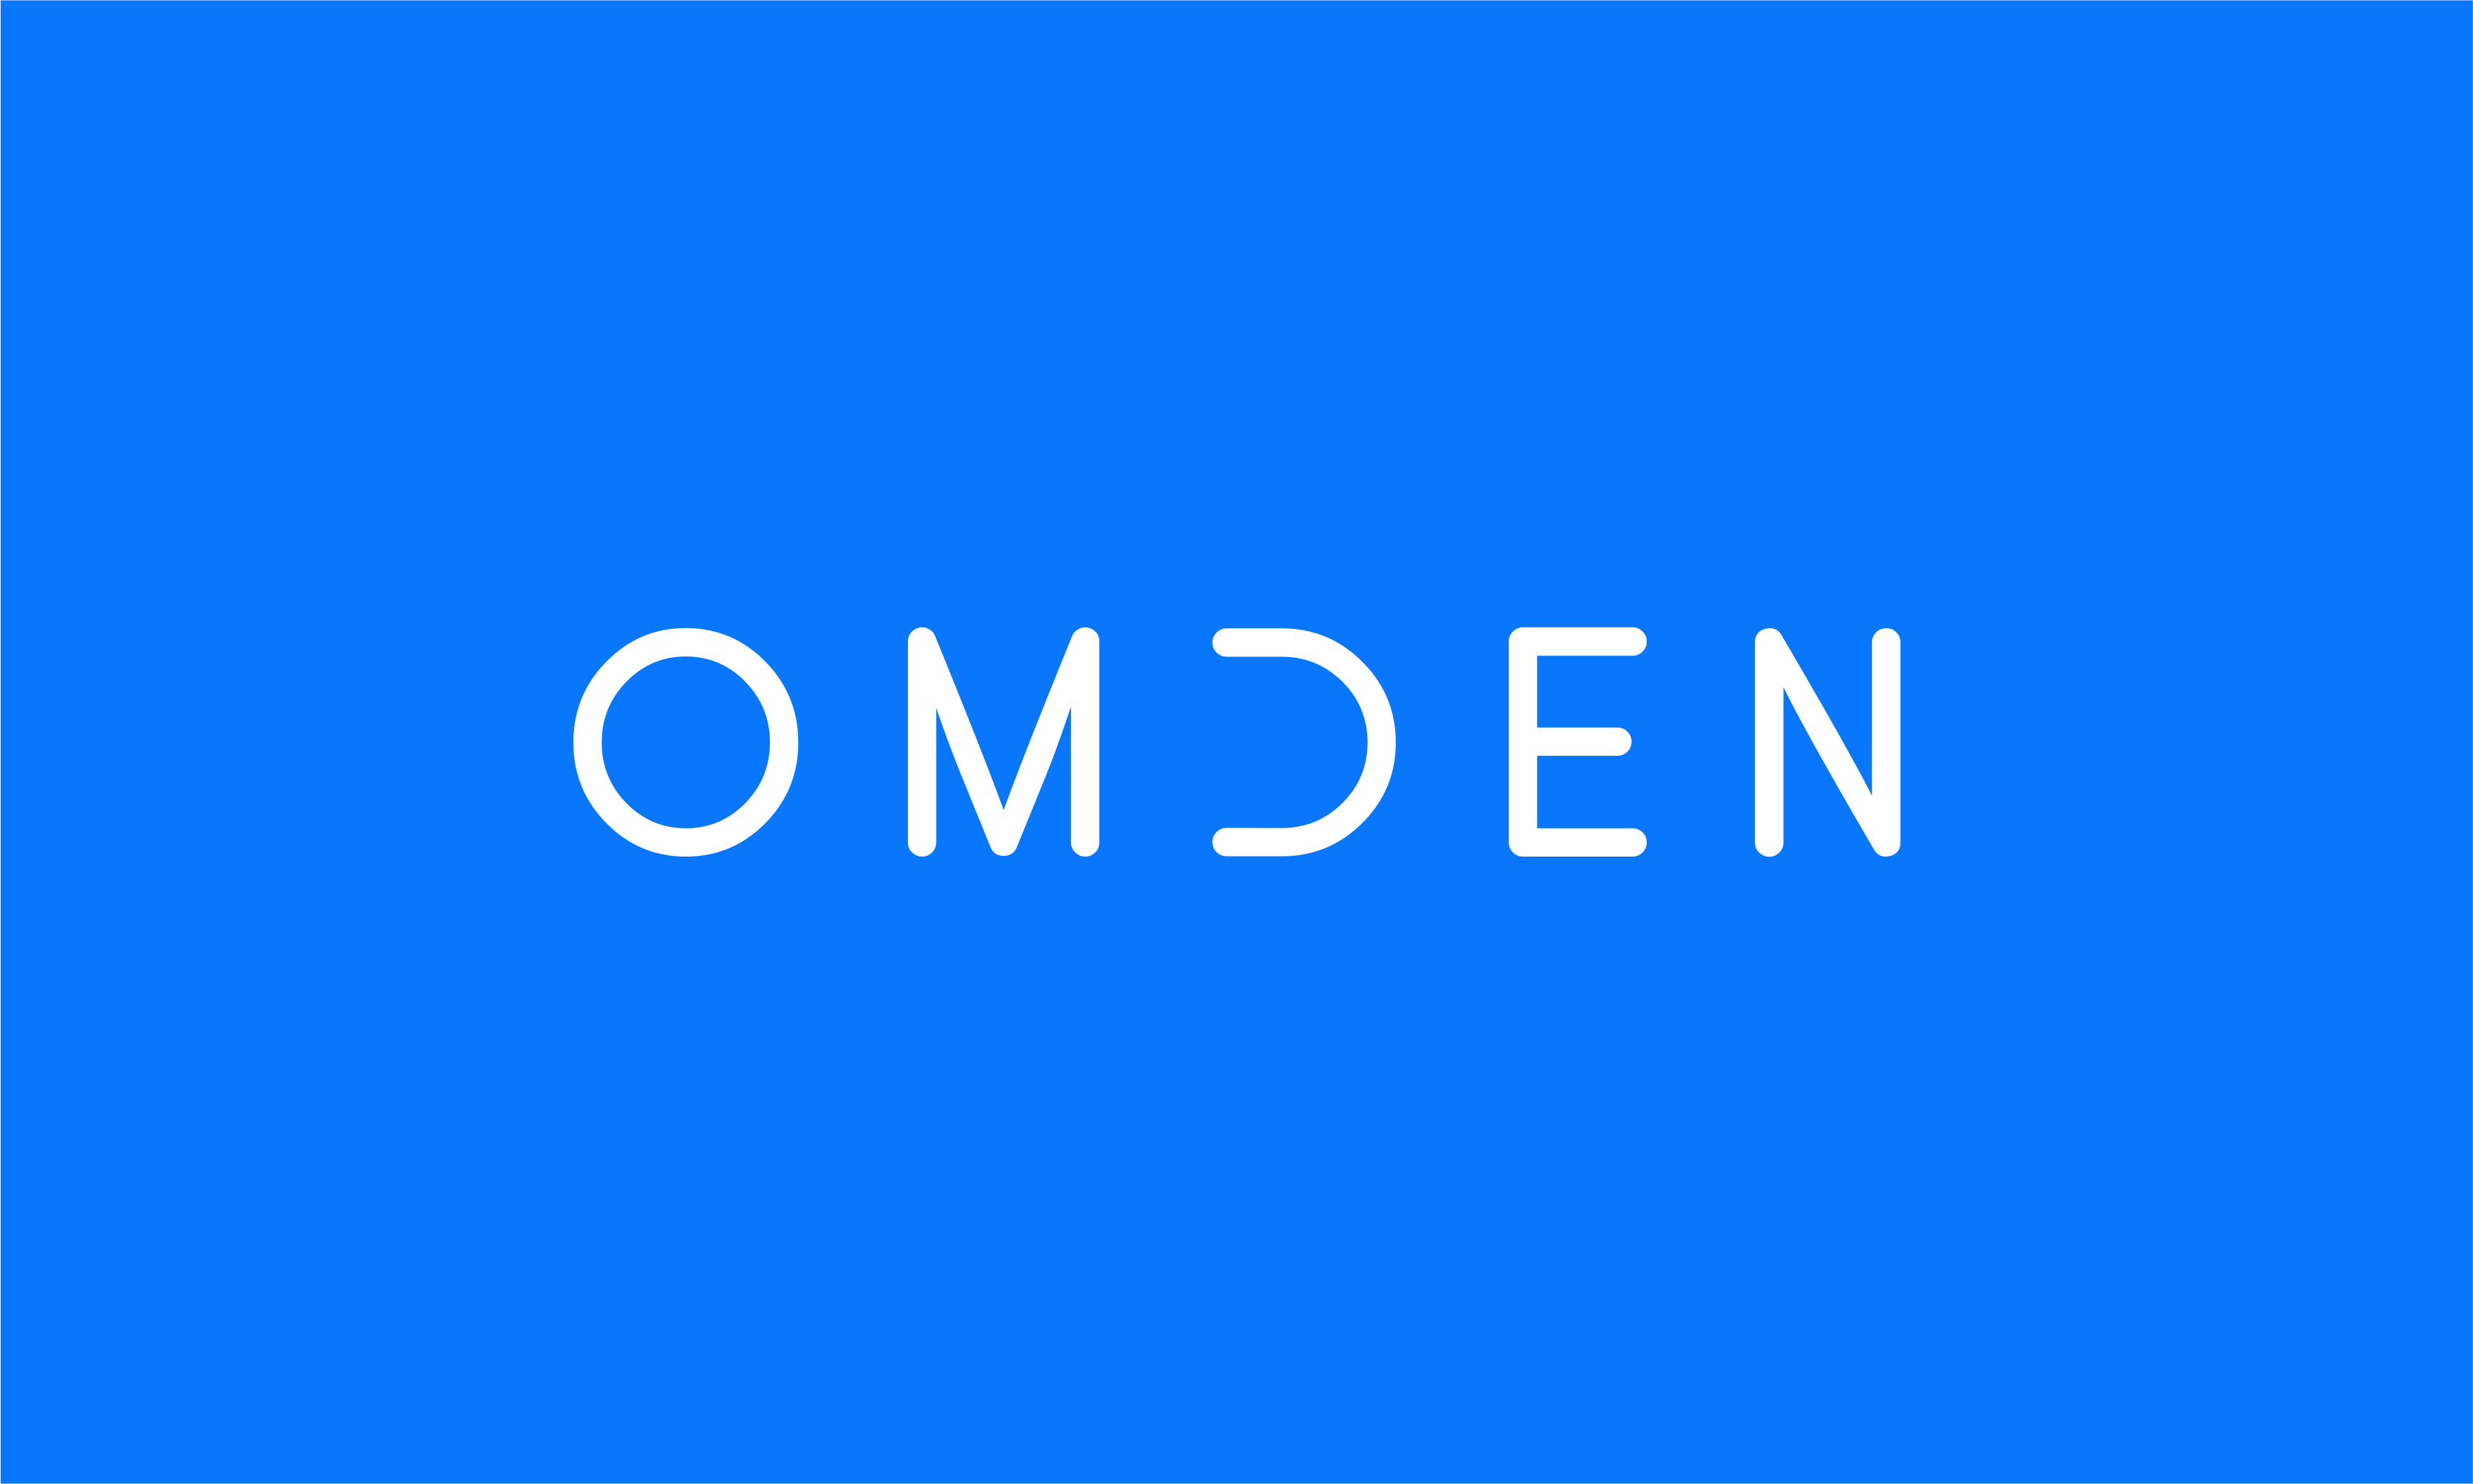 Omden - Retail business name for sale